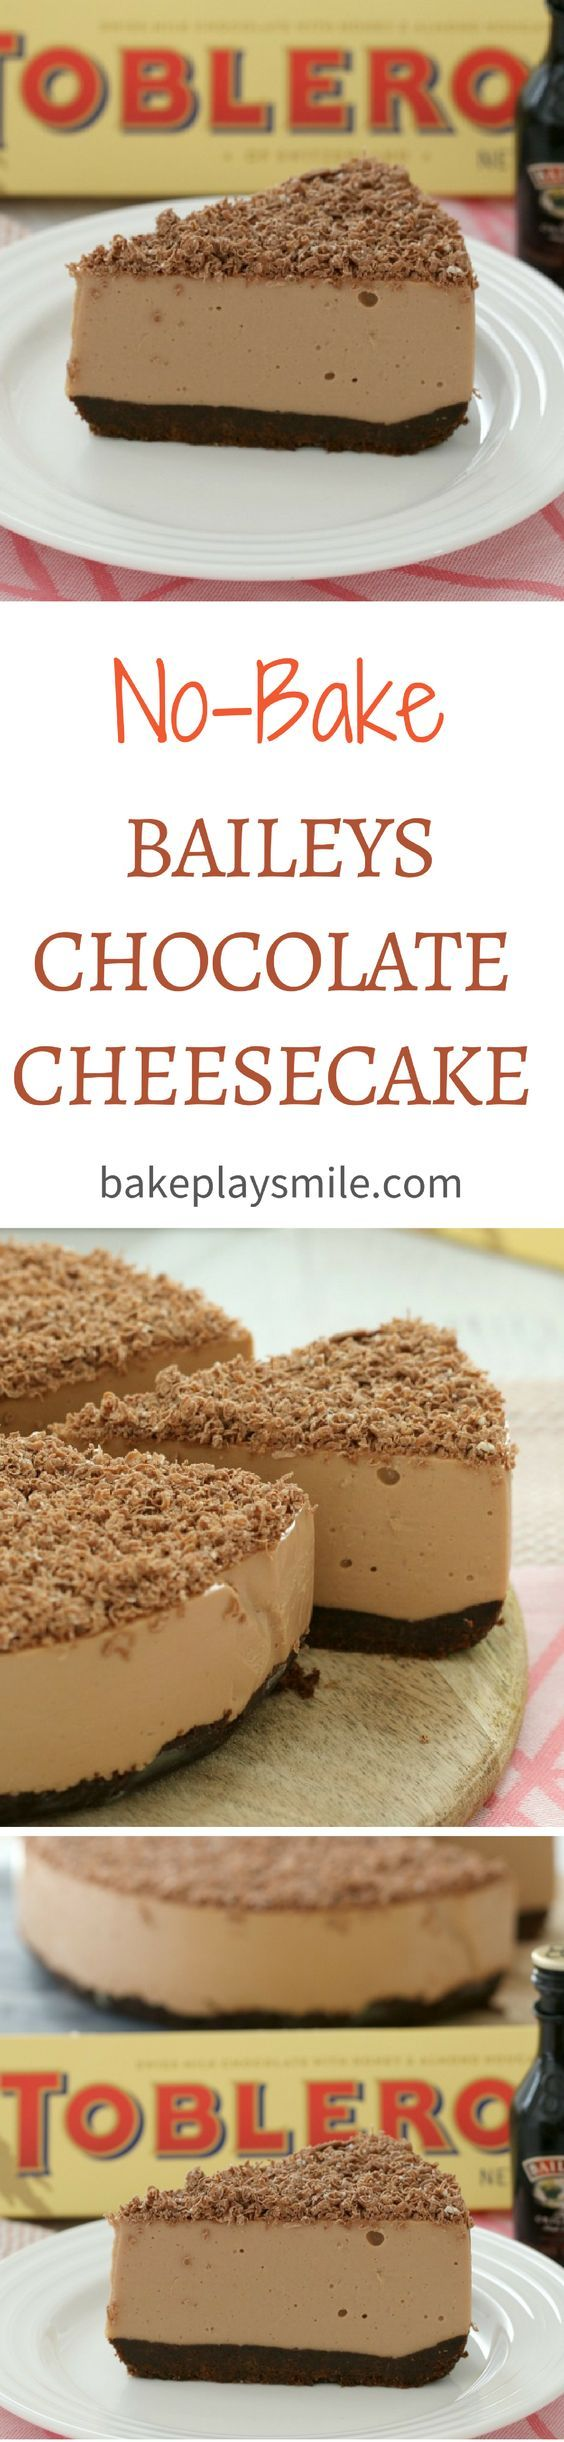 No-Bake Baileys Chocolate Cheesecake